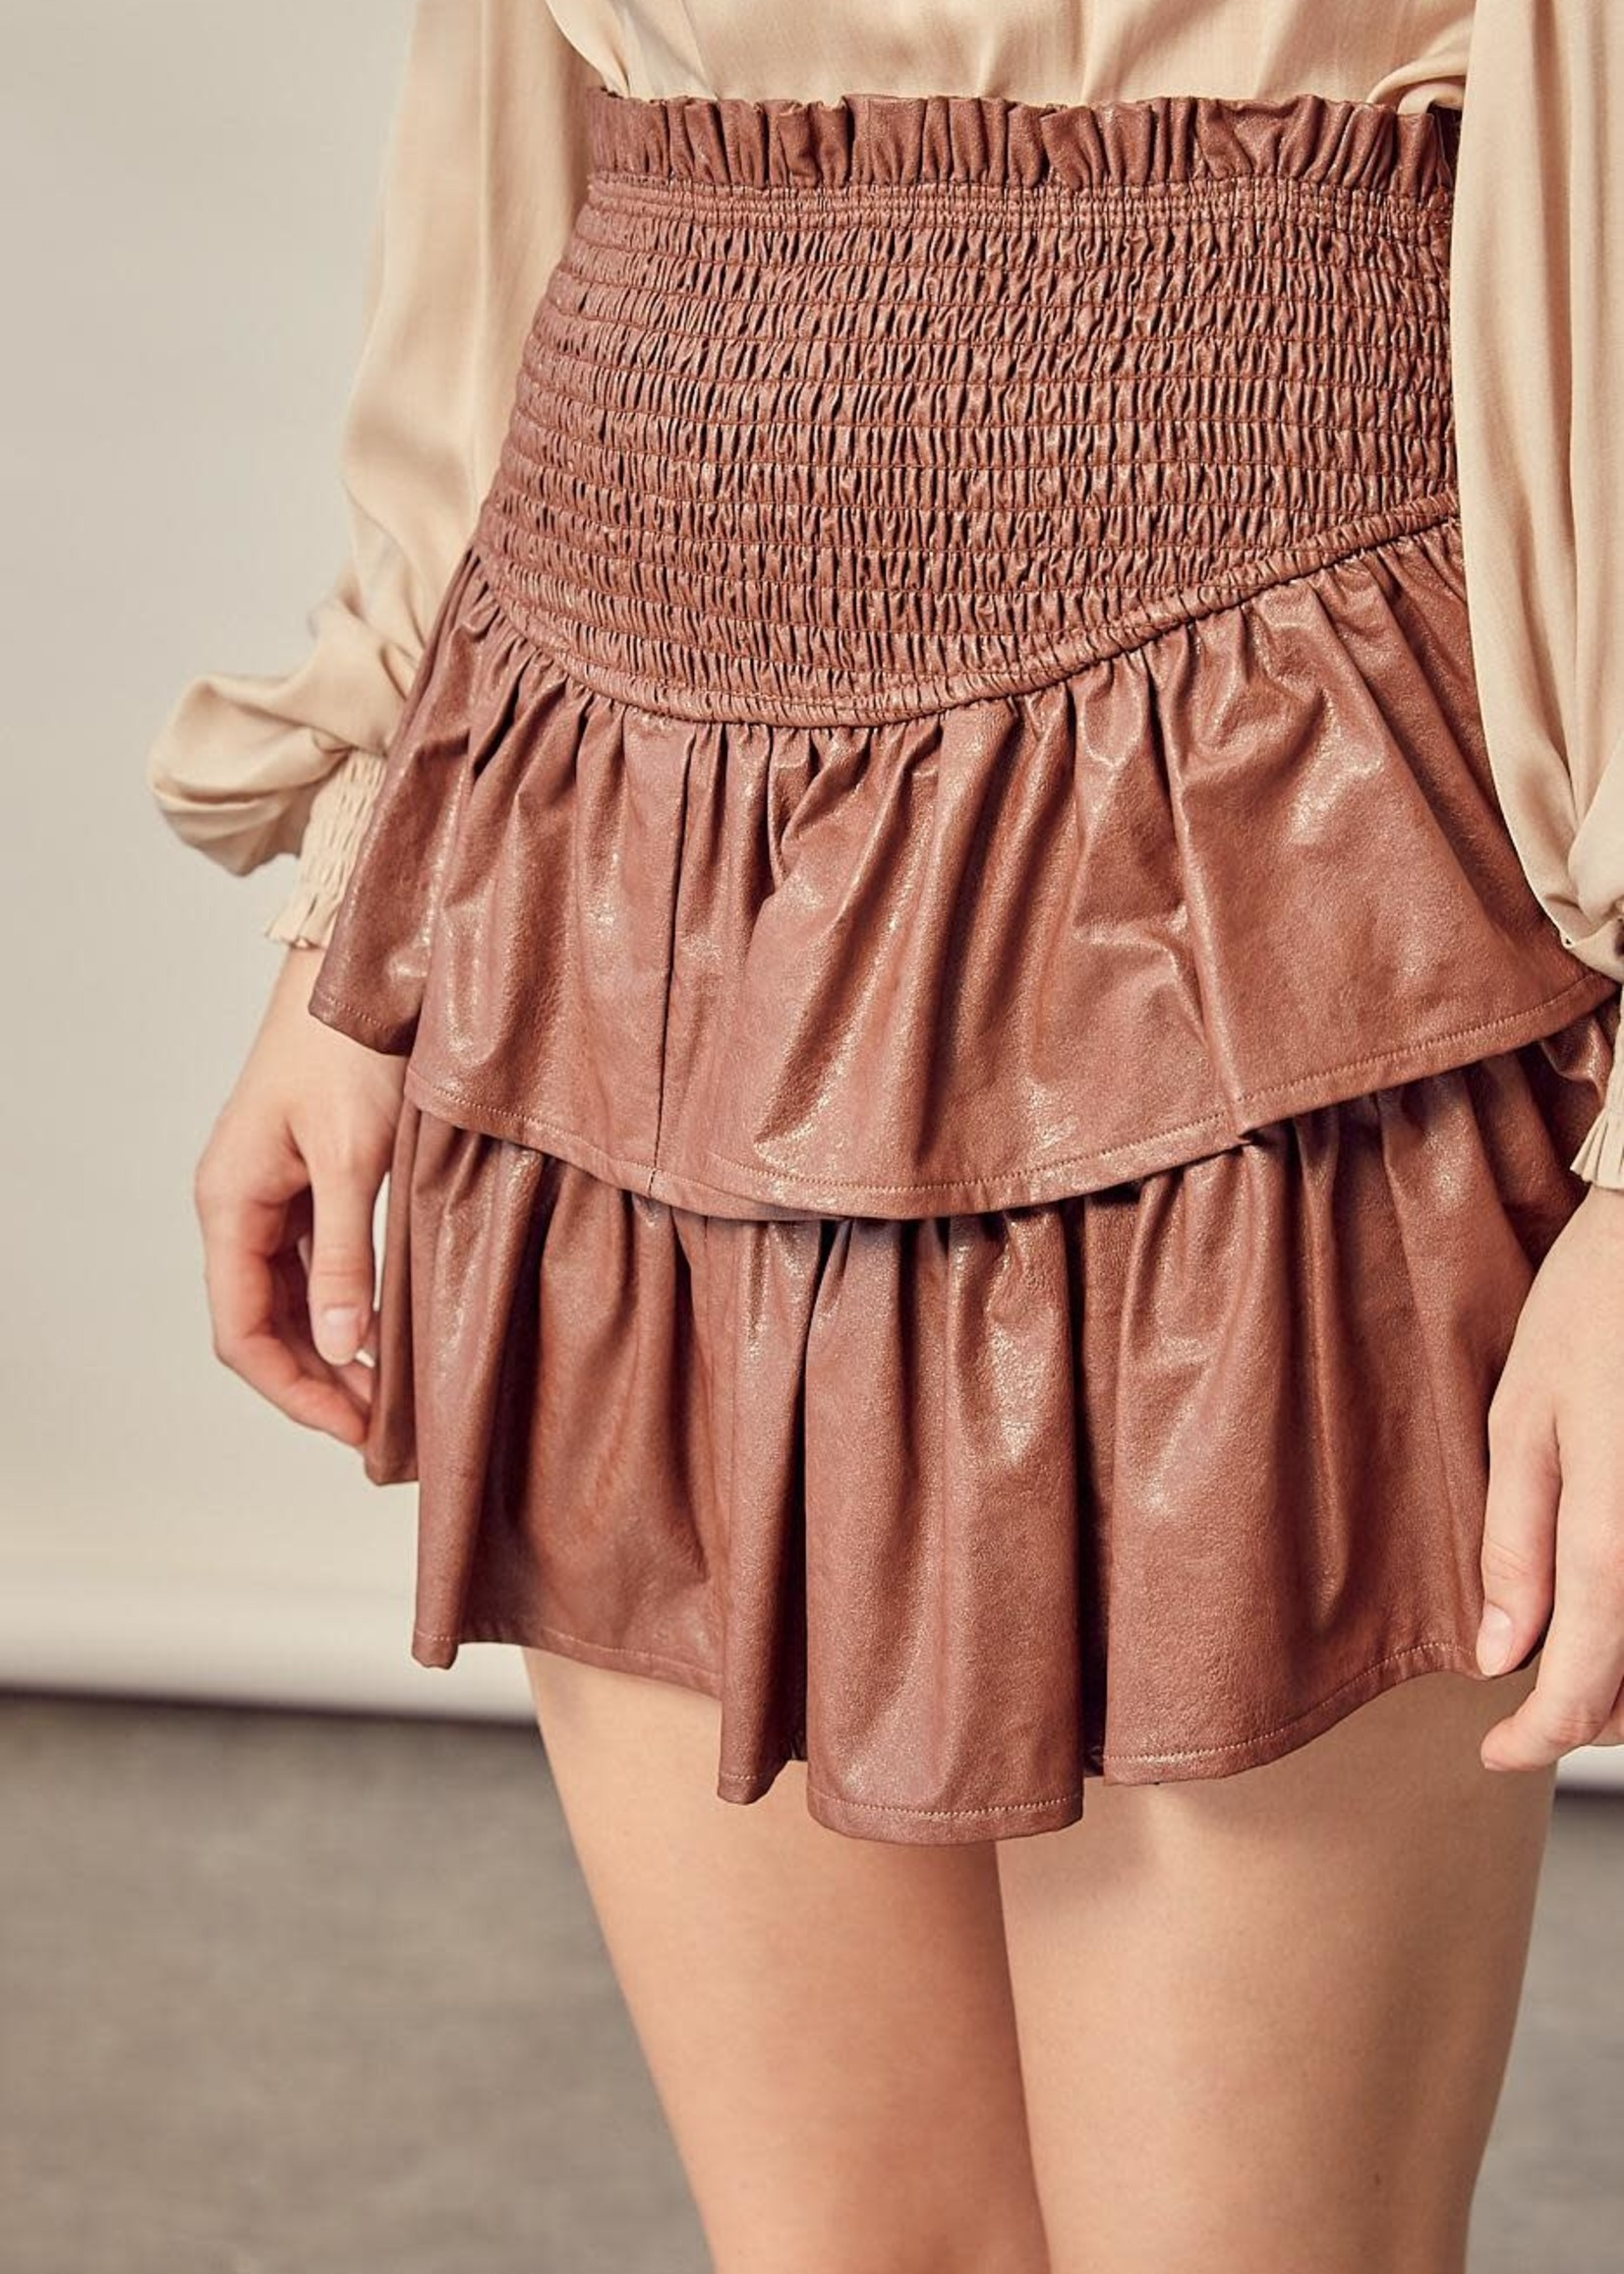 Leather Up Ruffle Skort (2 Colors)